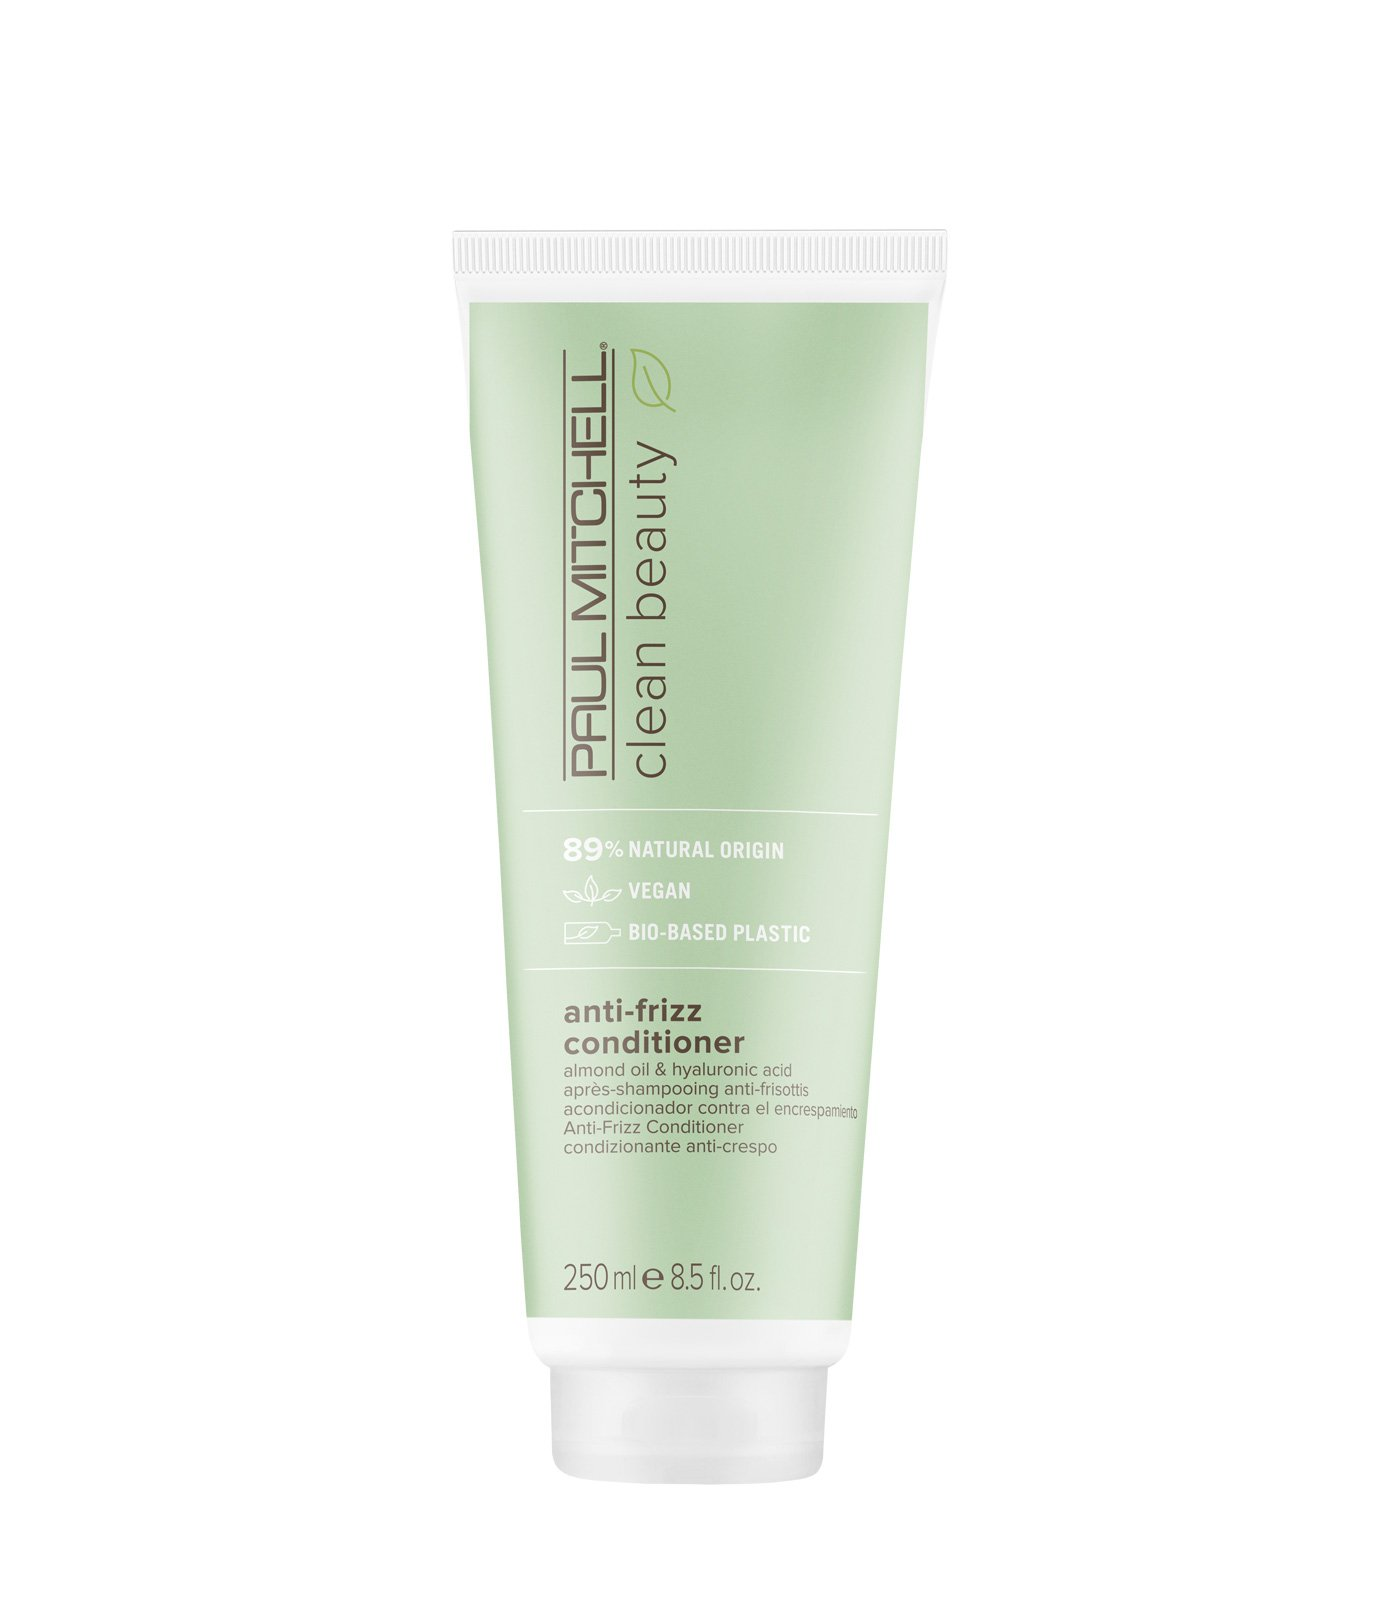 PAUL MITCHELL CLEAN BEAUTY Smooth Antizz-Frizz Conditioner 250 ml